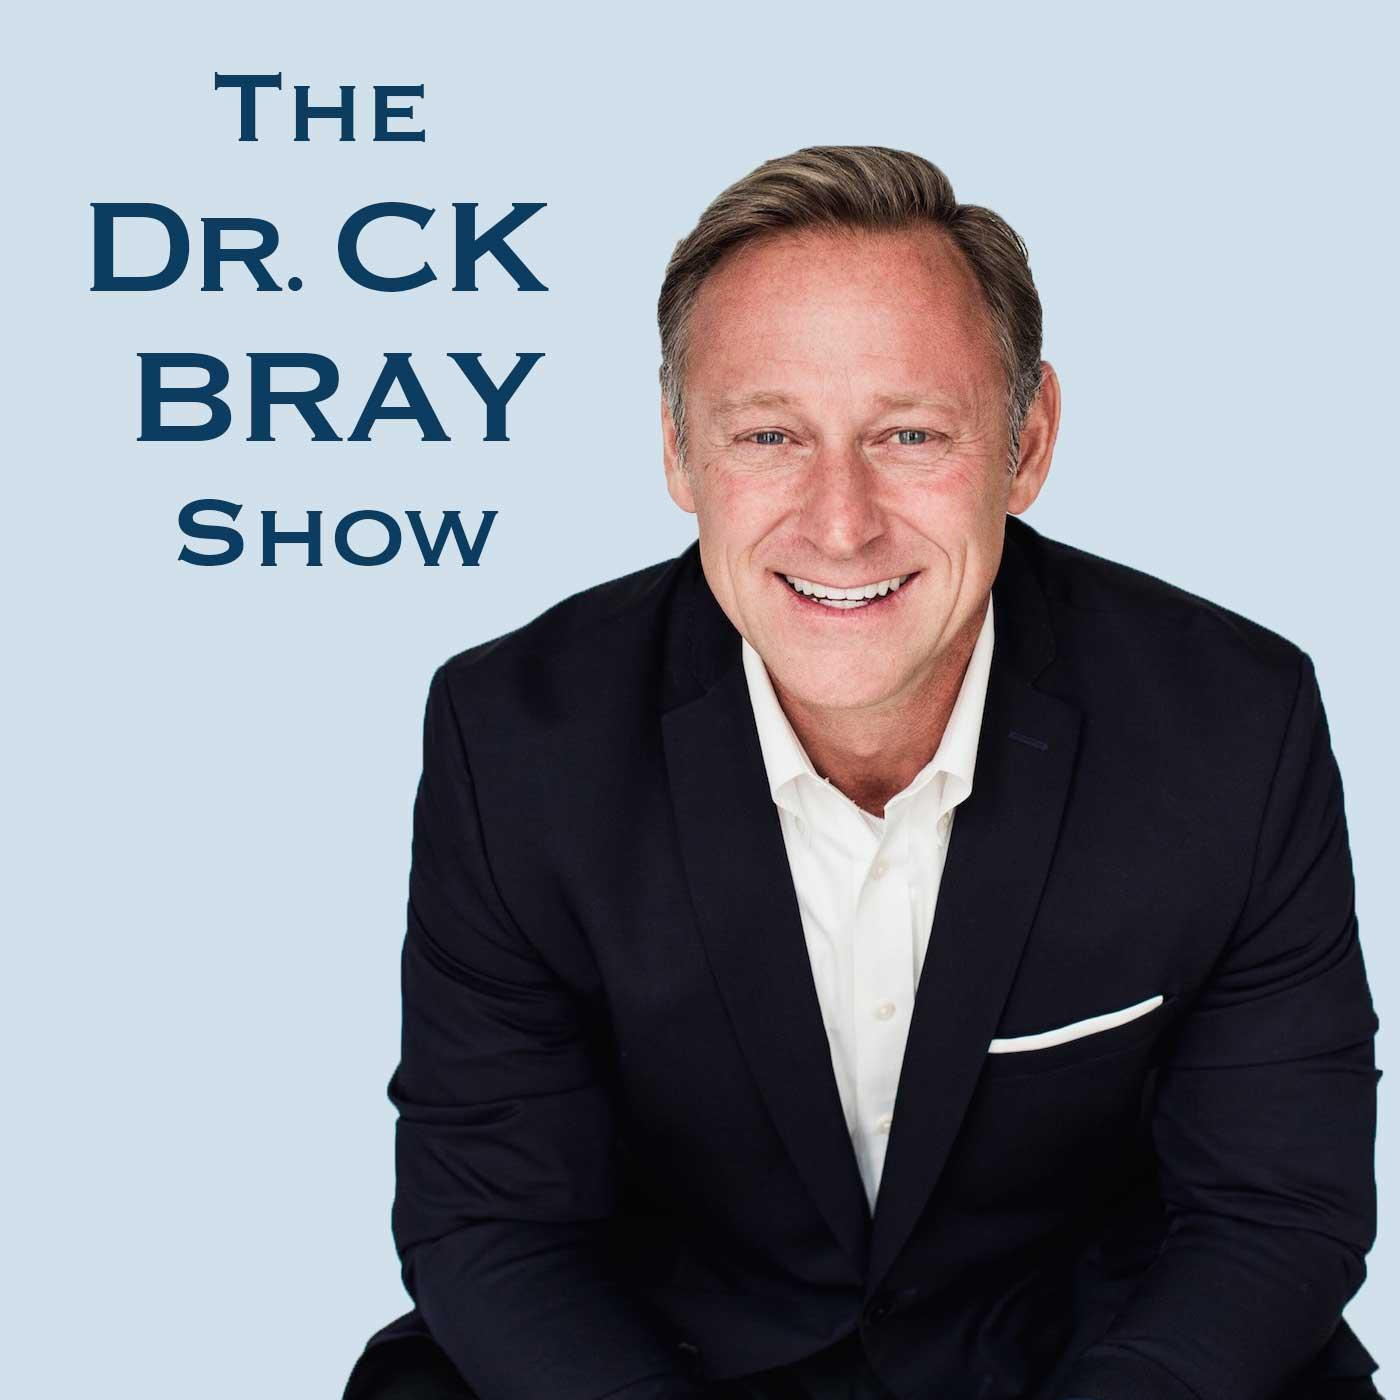 The Dr CK Bray Show